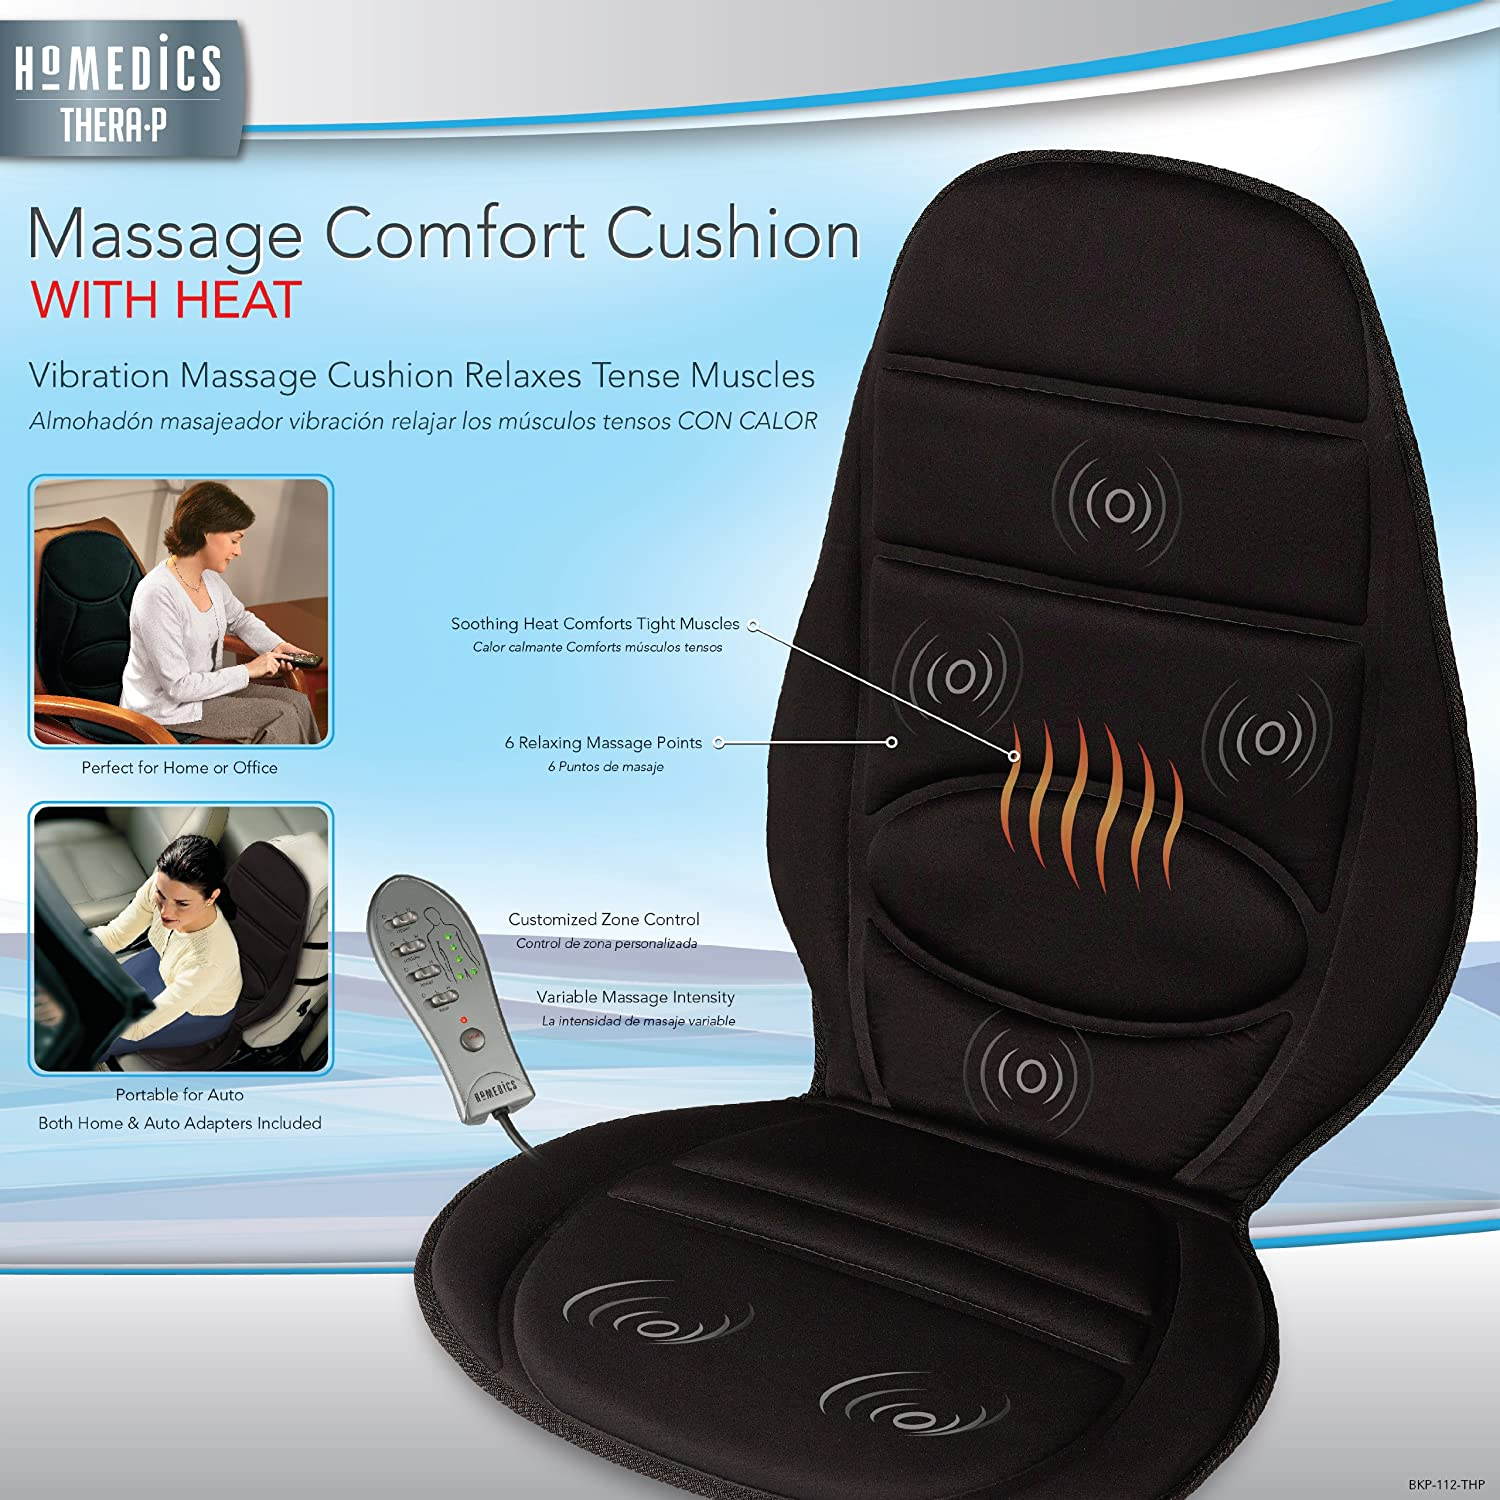 Amazon HoMedics Thera P Massage fort Cushion with Heat